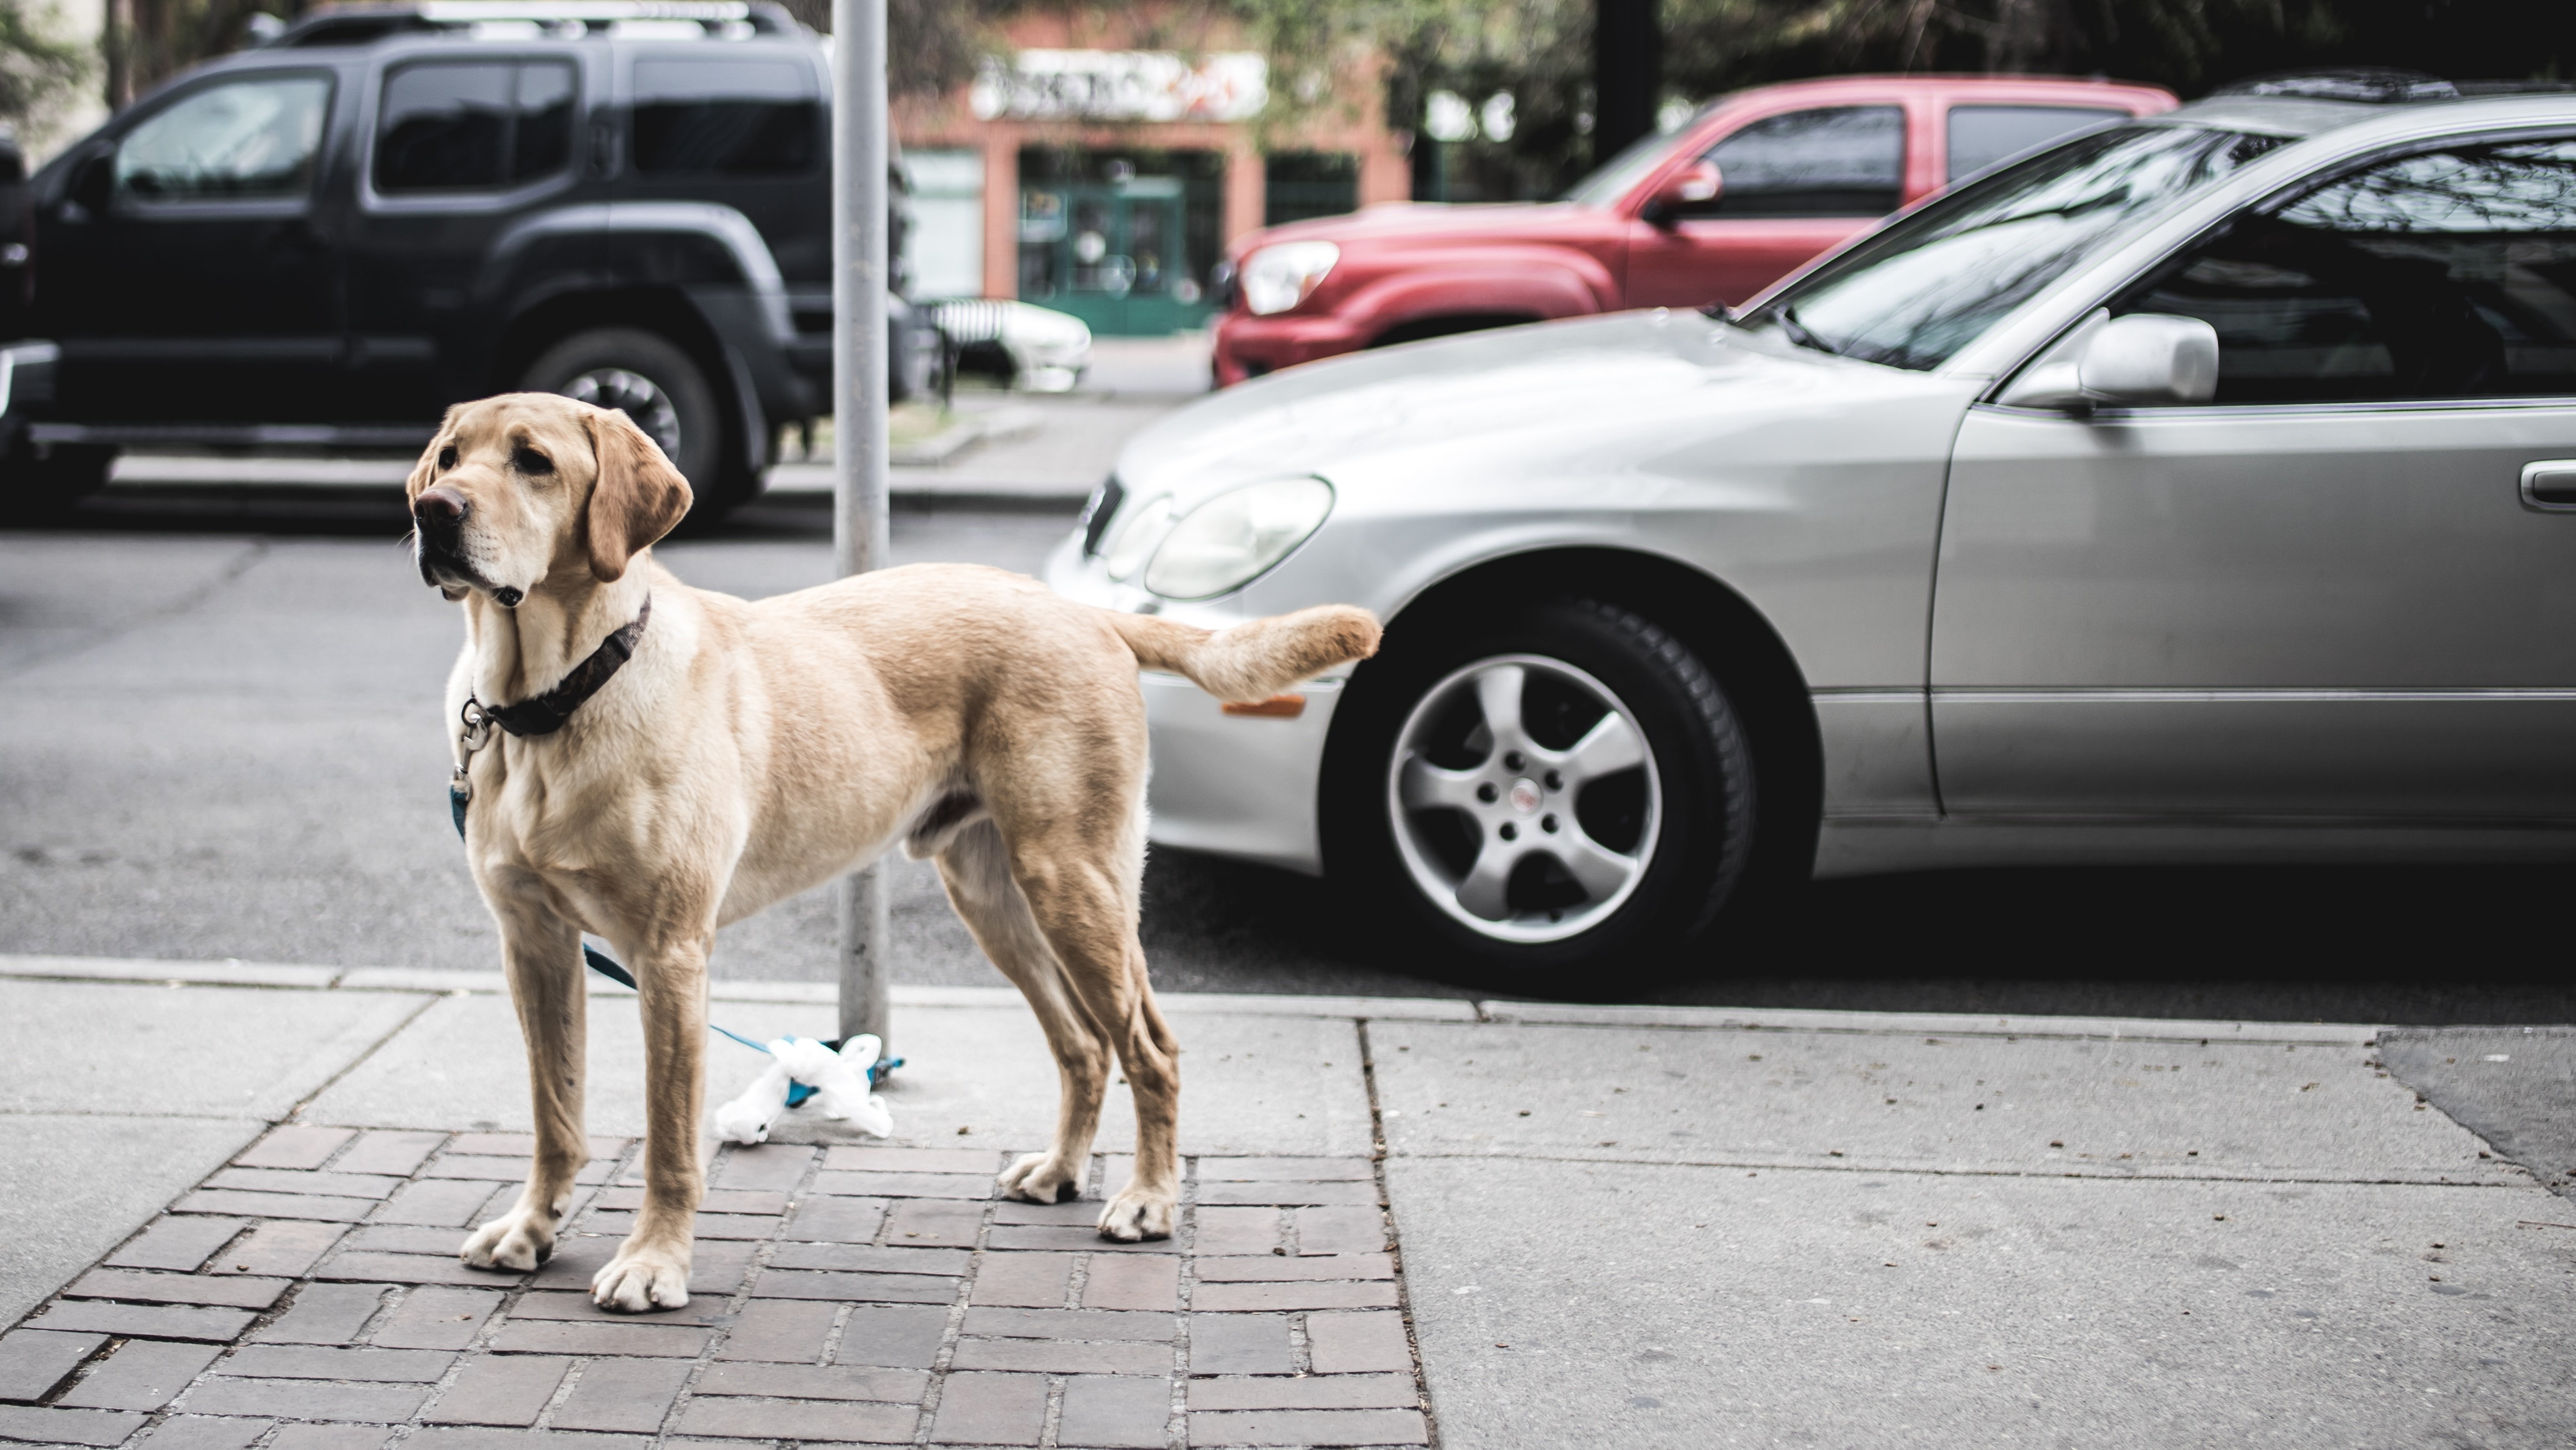 A dog on a lead tied to a pole waiting for its owner.